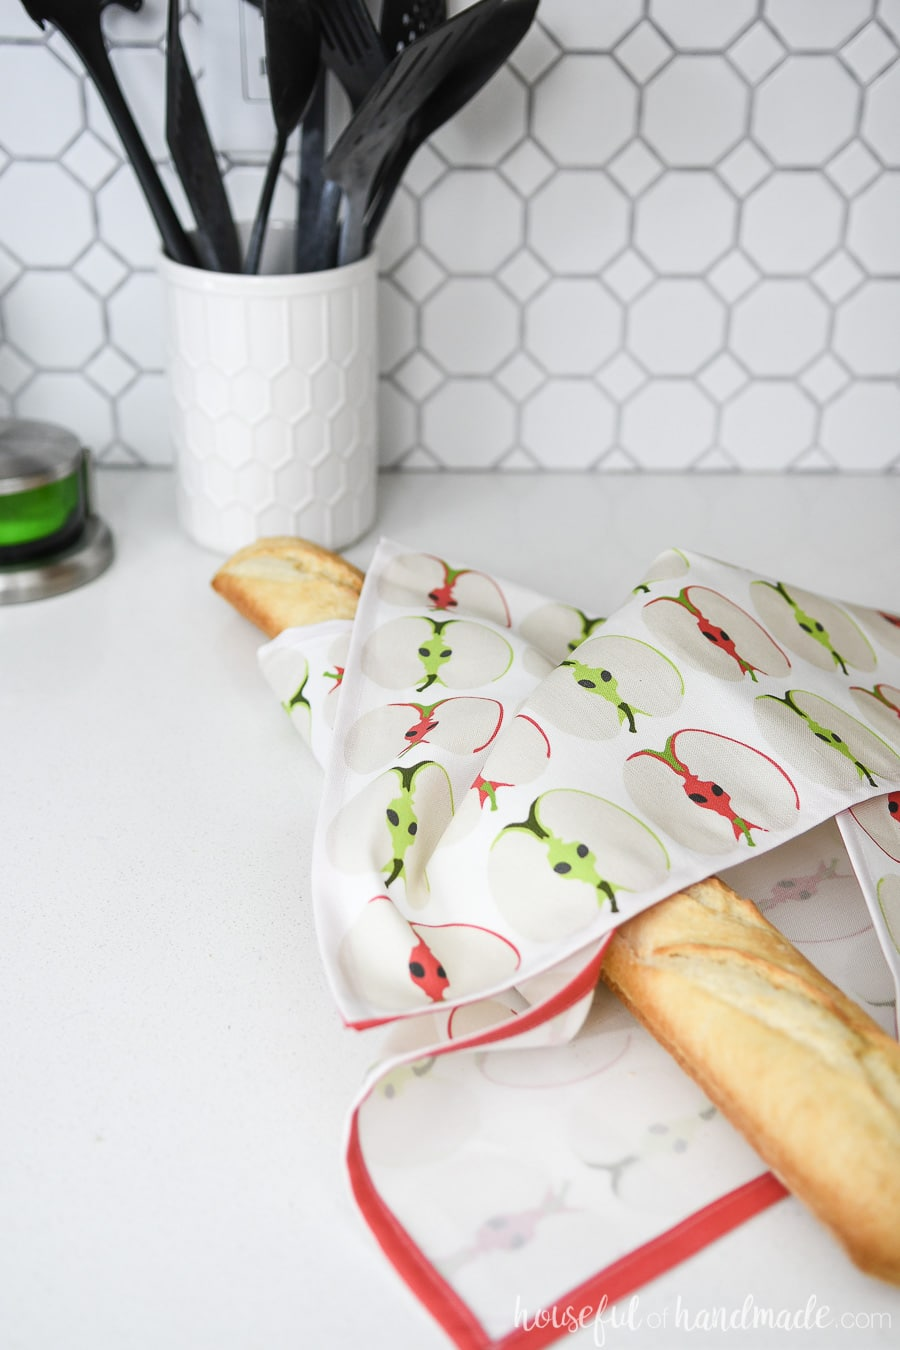 Baguette wrapped in a whimsical apple printed tea towel.